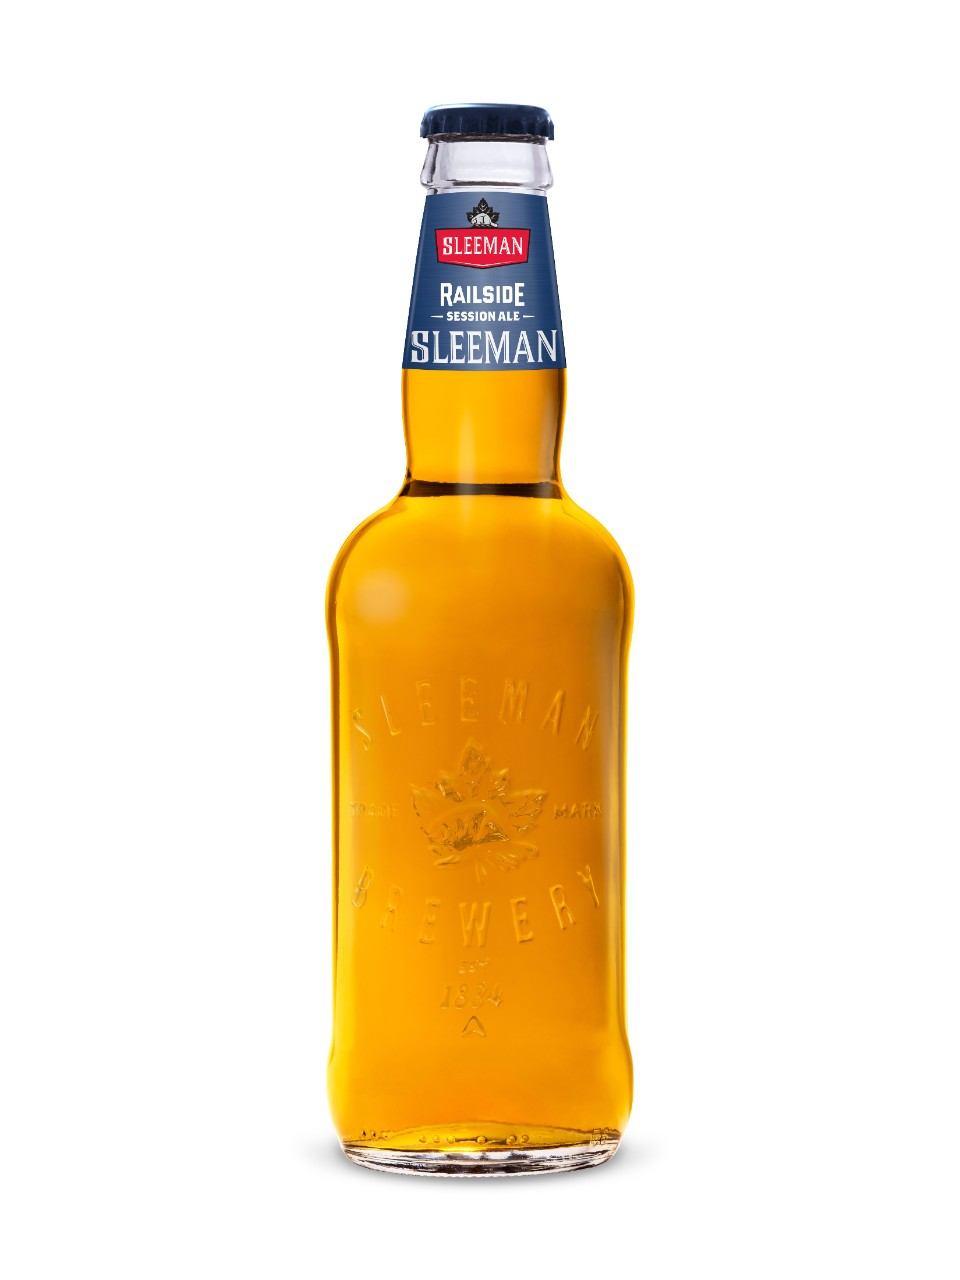 Sleeman Railside Session Ale